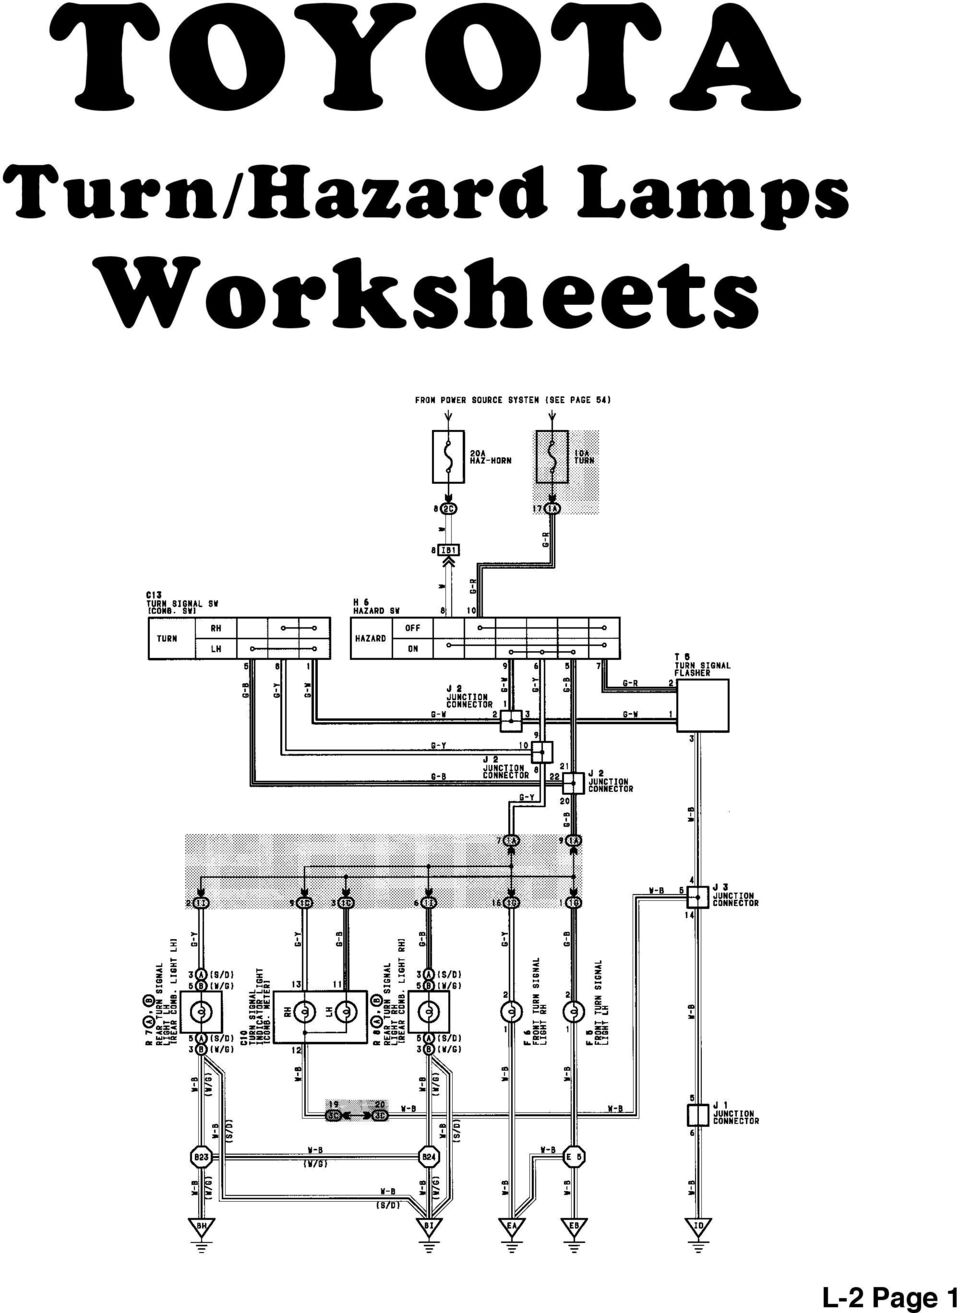 hight resolution of 16 toyota turn signal hazard lamps reference l 2 page 2